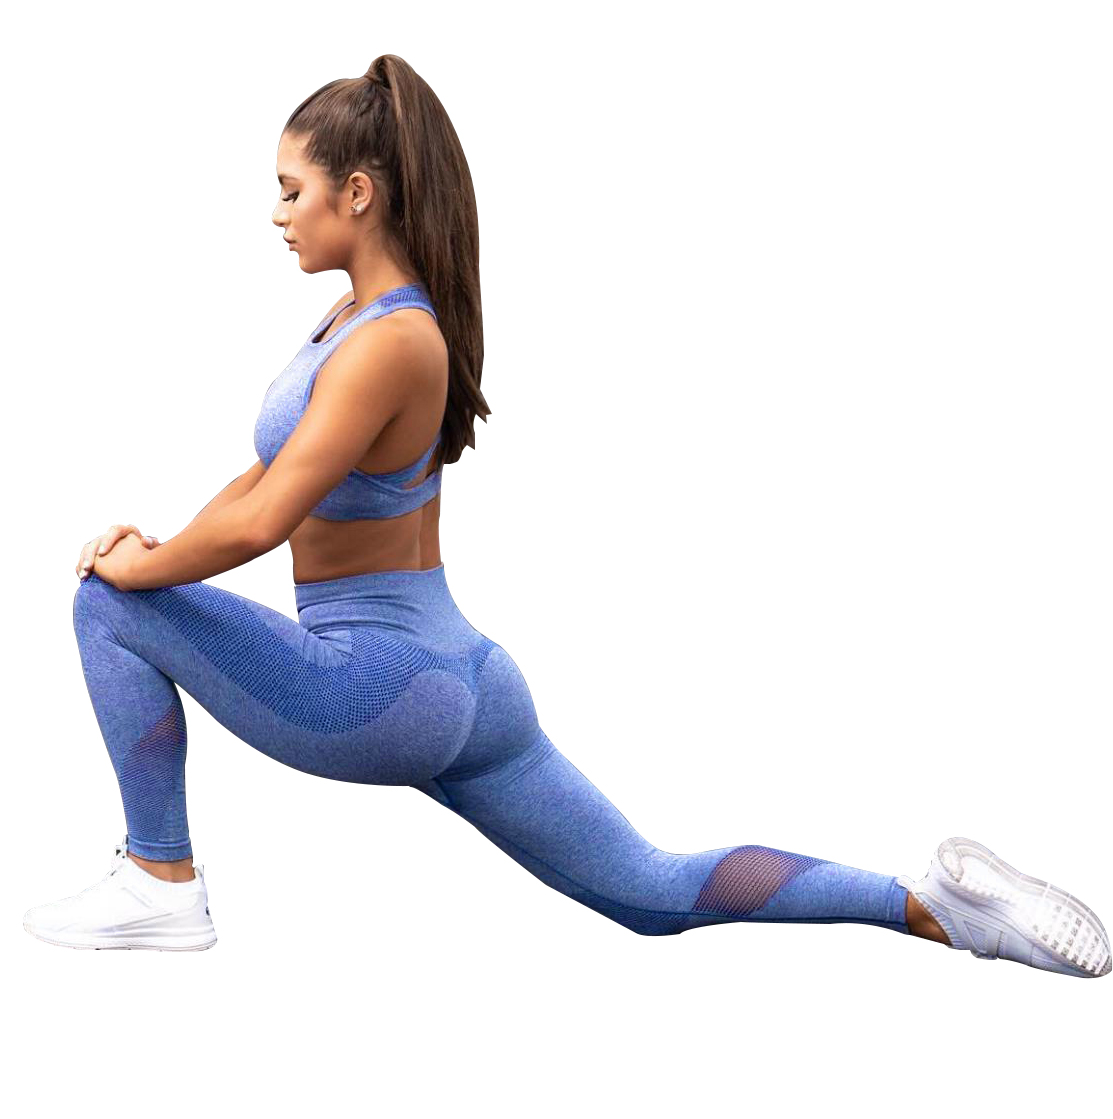 Sports Wear for Women Gym Crop Top Pants 2 Pieces Yoga Sets Sexy Seamless Leggings Suits Fitness Running Gym Active ClothesSports Wear for Women Gym Crop Top Pants 2 Pieces Yoga Sets Sexy Seamless Leggings Suits Fitness Running Gym Active Clothes